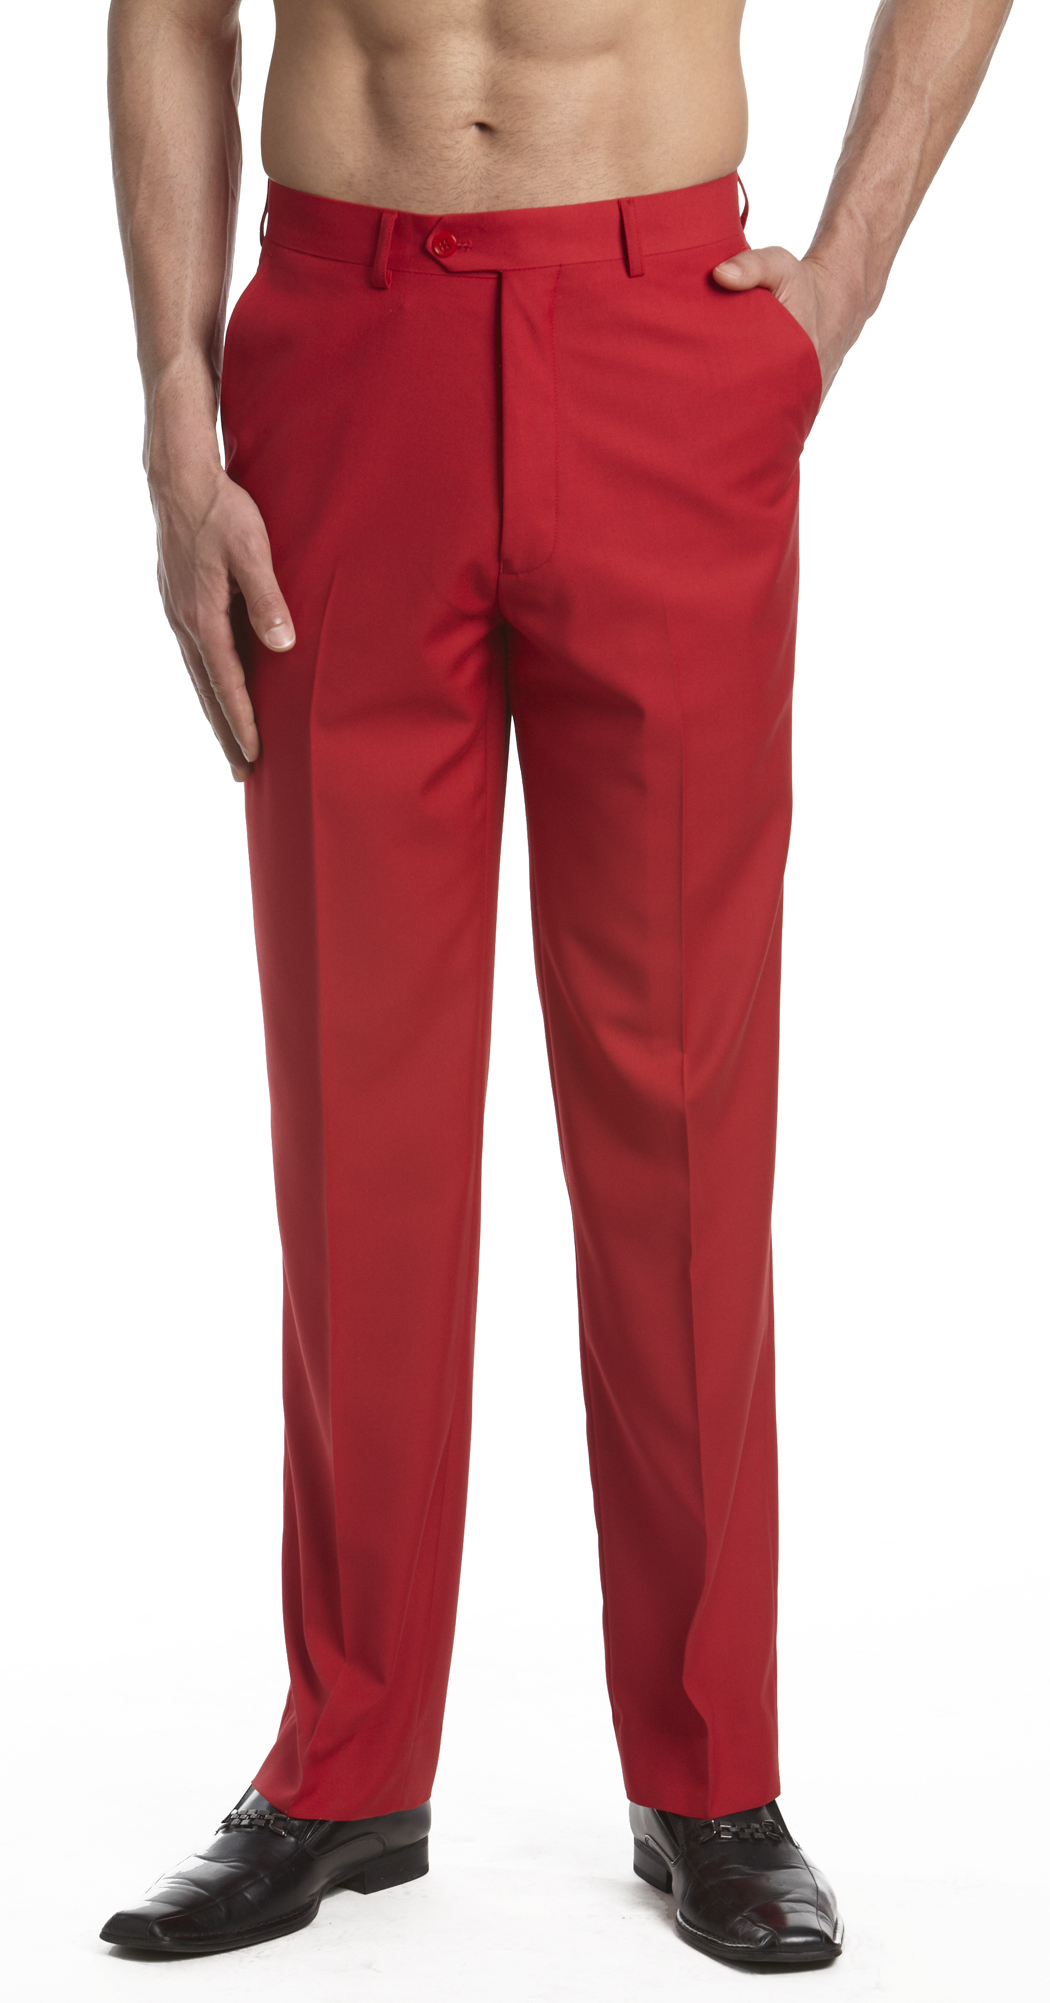 Details about concitor men s dress pants trousers flat front slacks